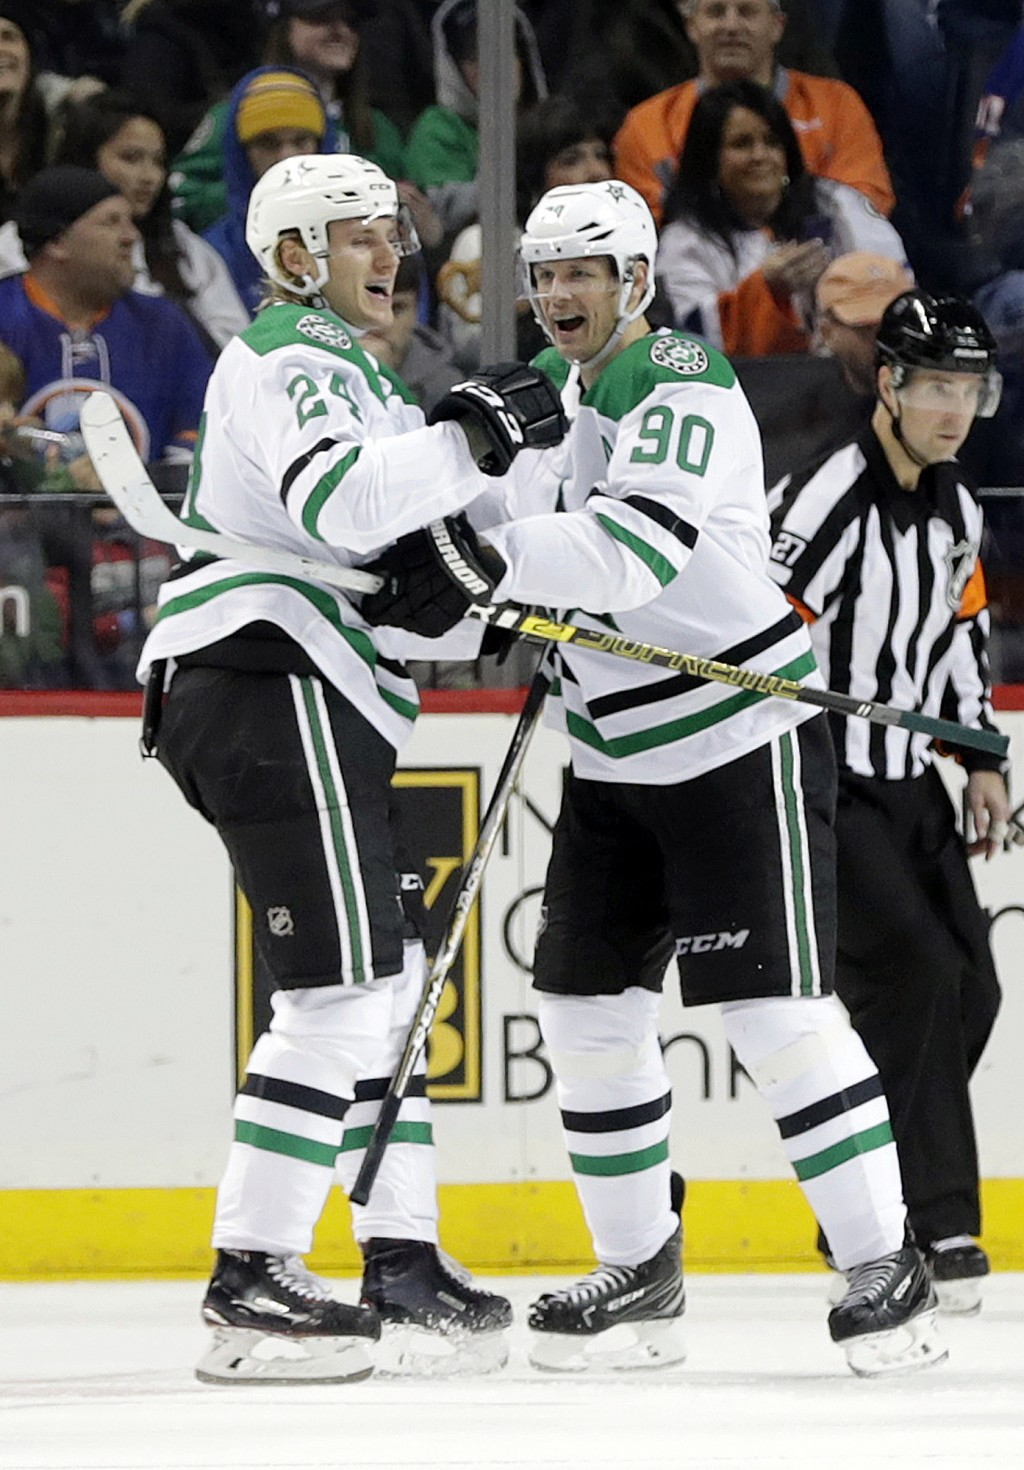 Dallas Stars' Roope Hintz (24) celebrates a goal with teammate Jason Spezza (90) during the second period of an NHL hockey game Sunday, Nov. 18, 2018,